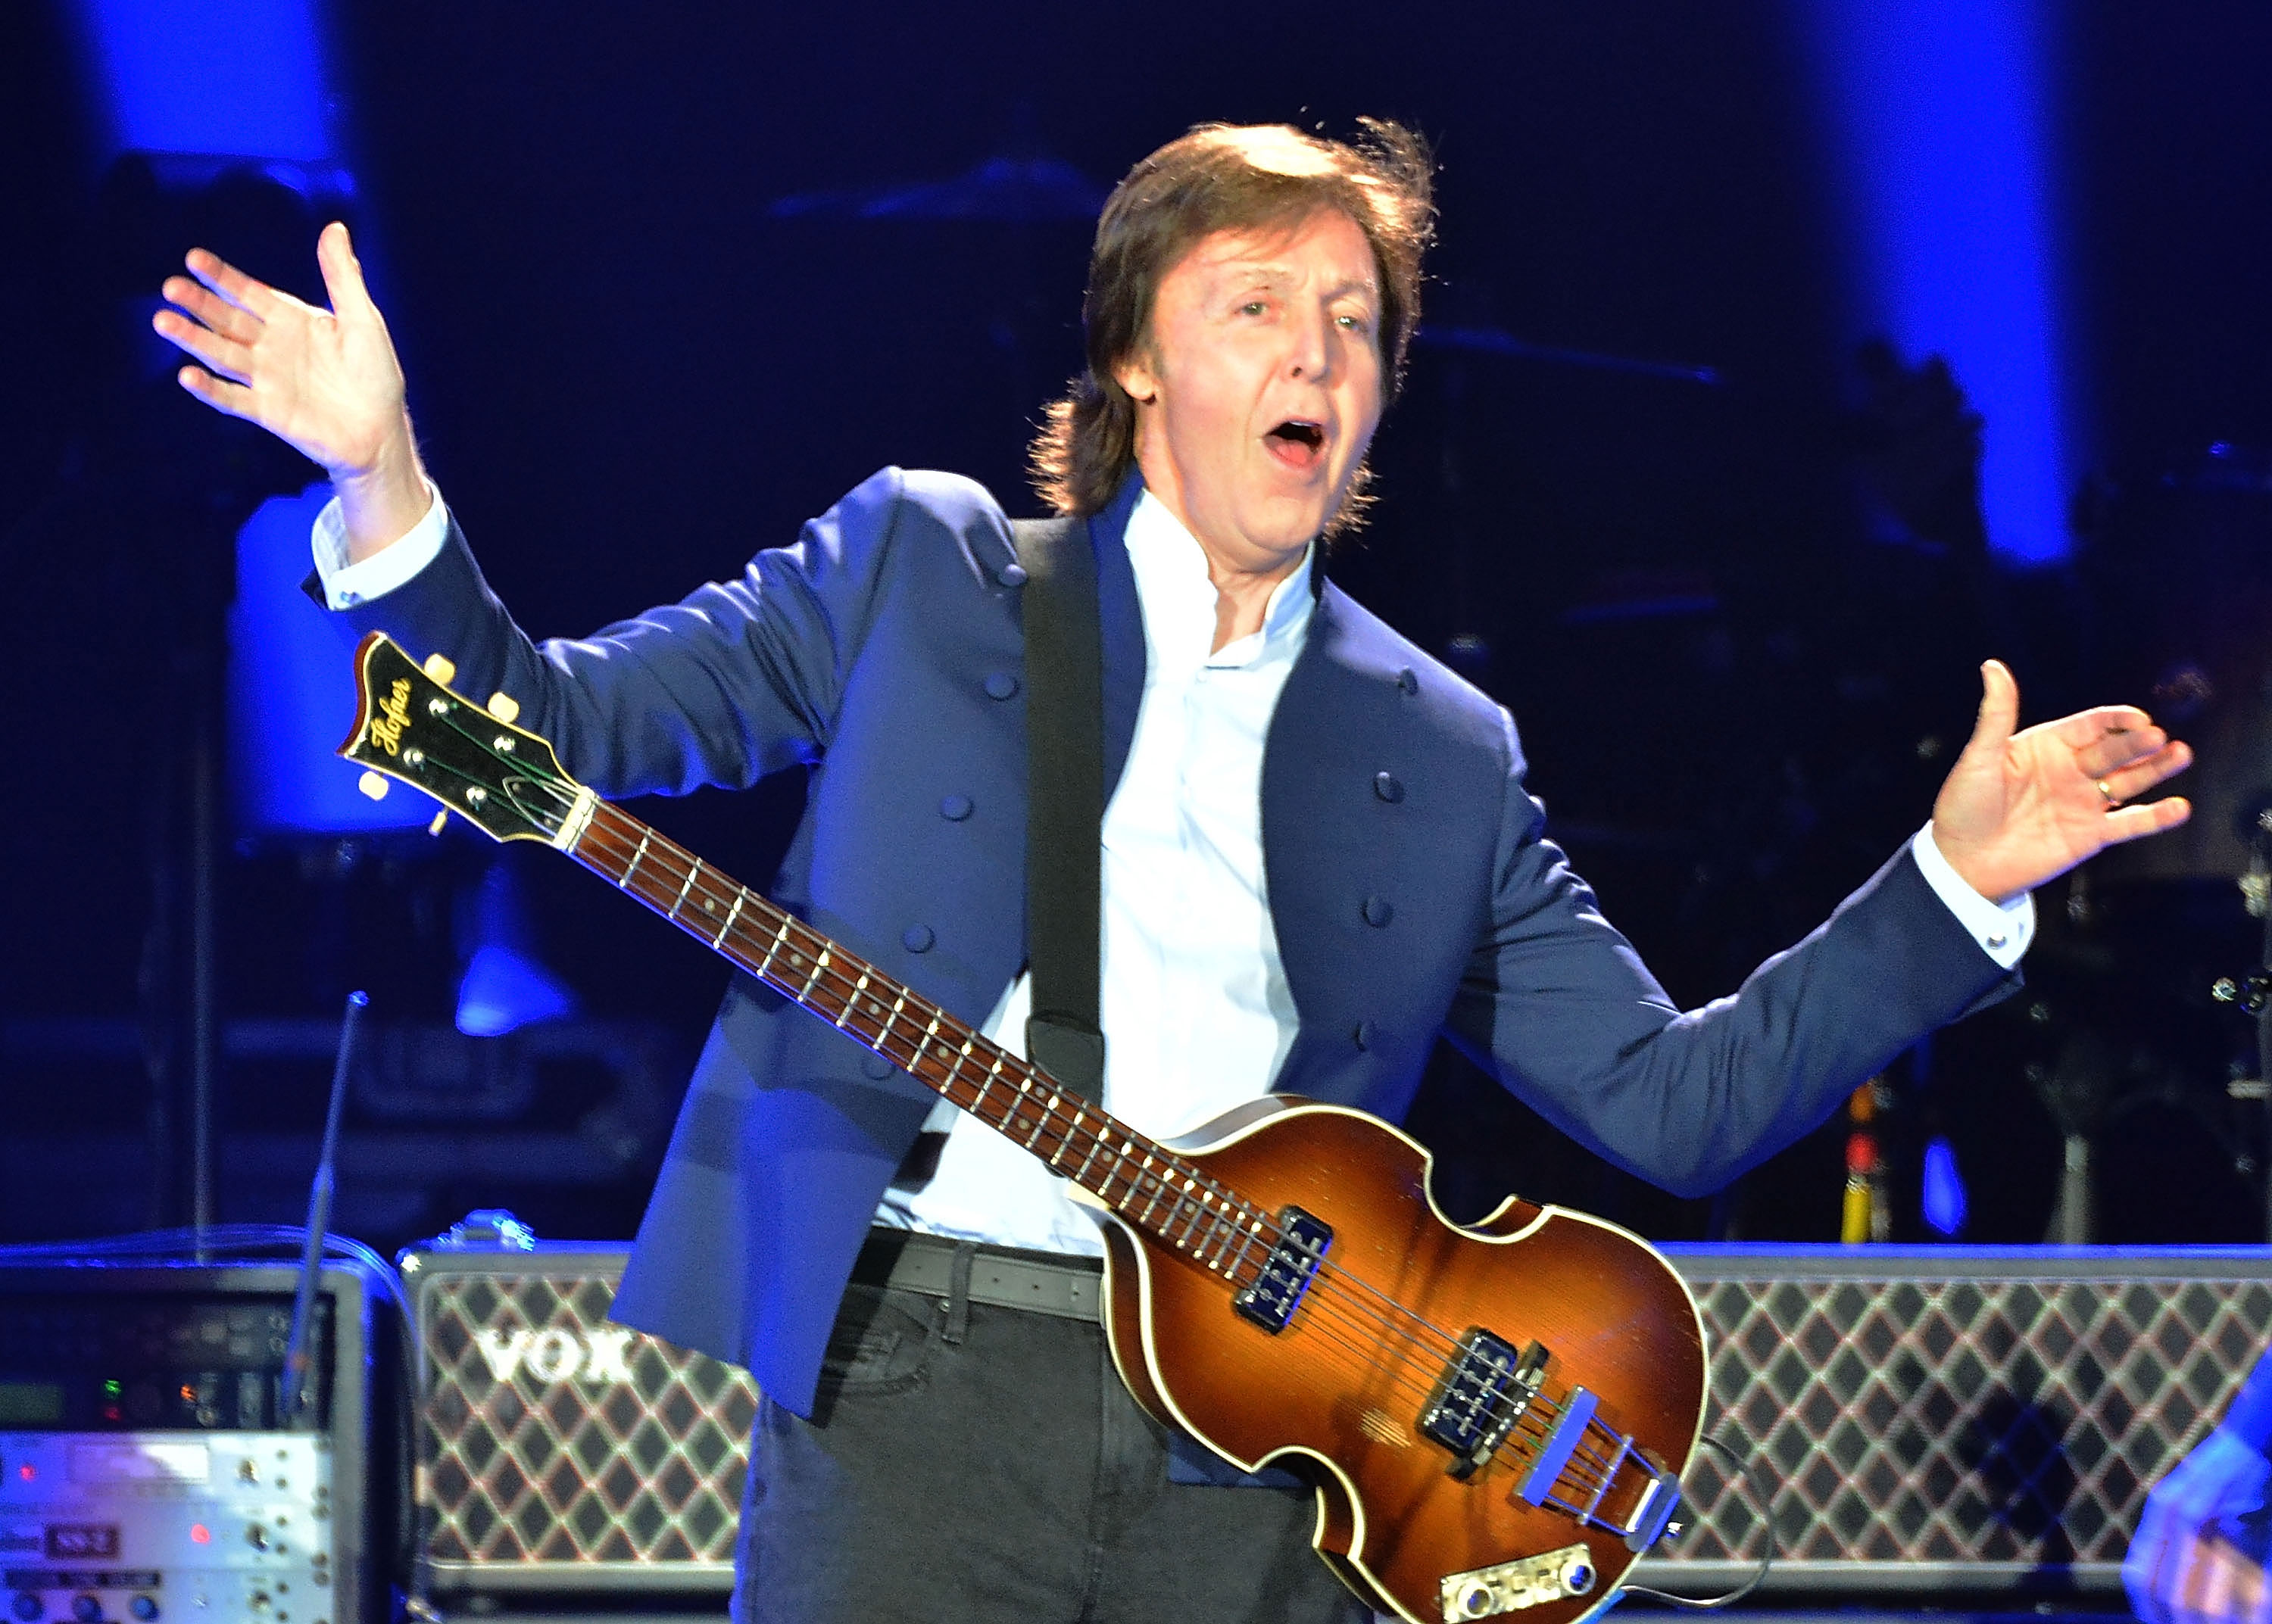 Sony 'disappointed' following Sir Paul McCartney's lawsuit to reclaim rights to Beatles songs